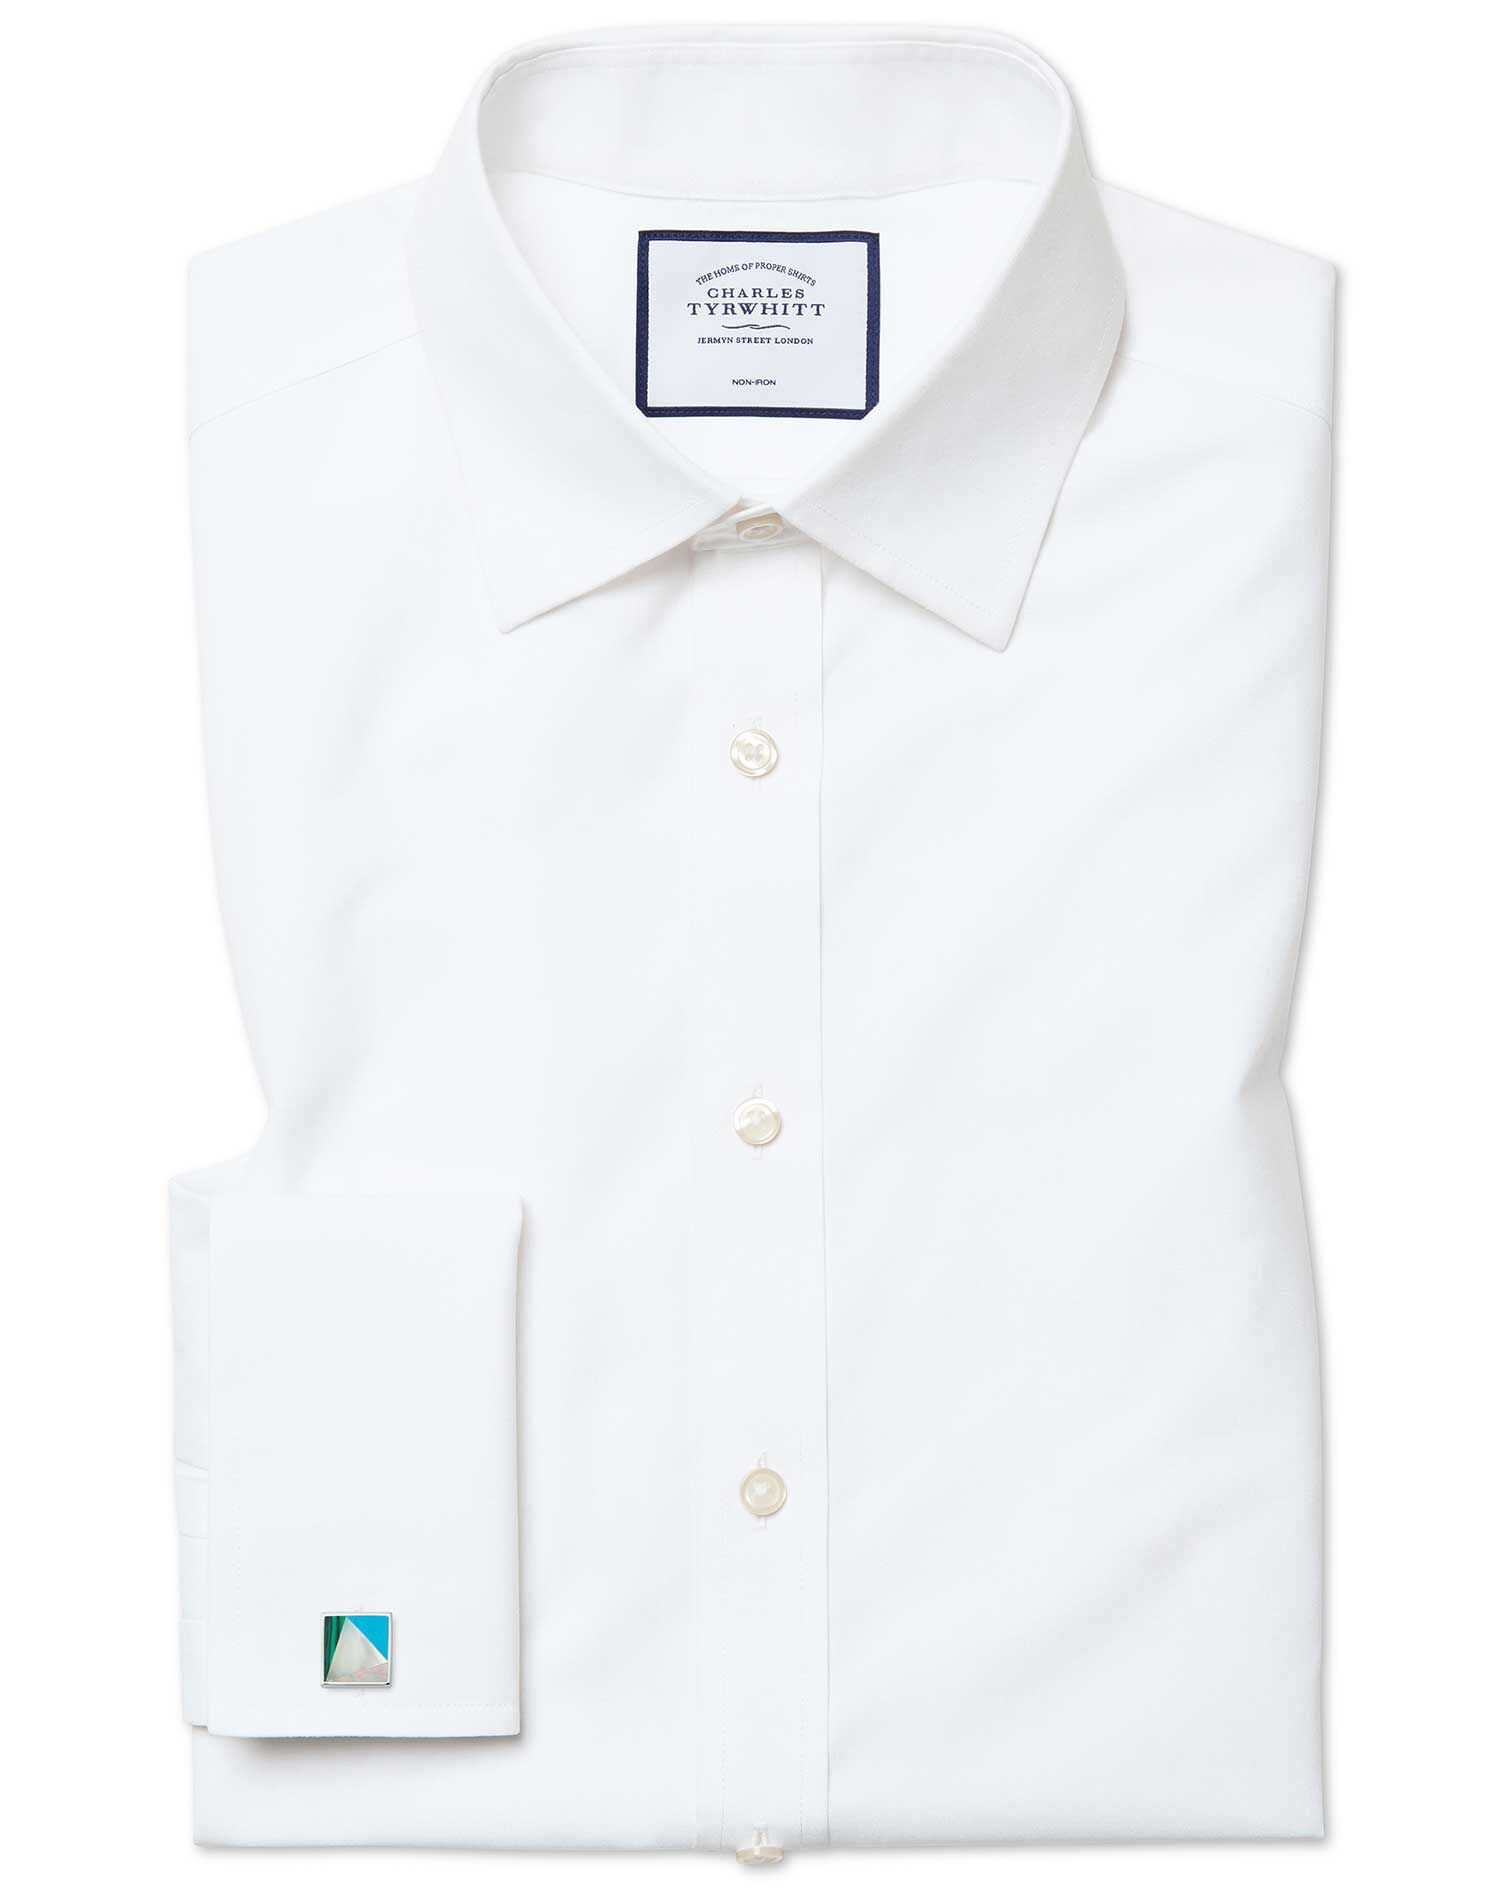 Classic Fit Non-Iron Poplin White Cotton Formal Shirt Double Cuff Size 17/36 by Charles Tyrwhitt